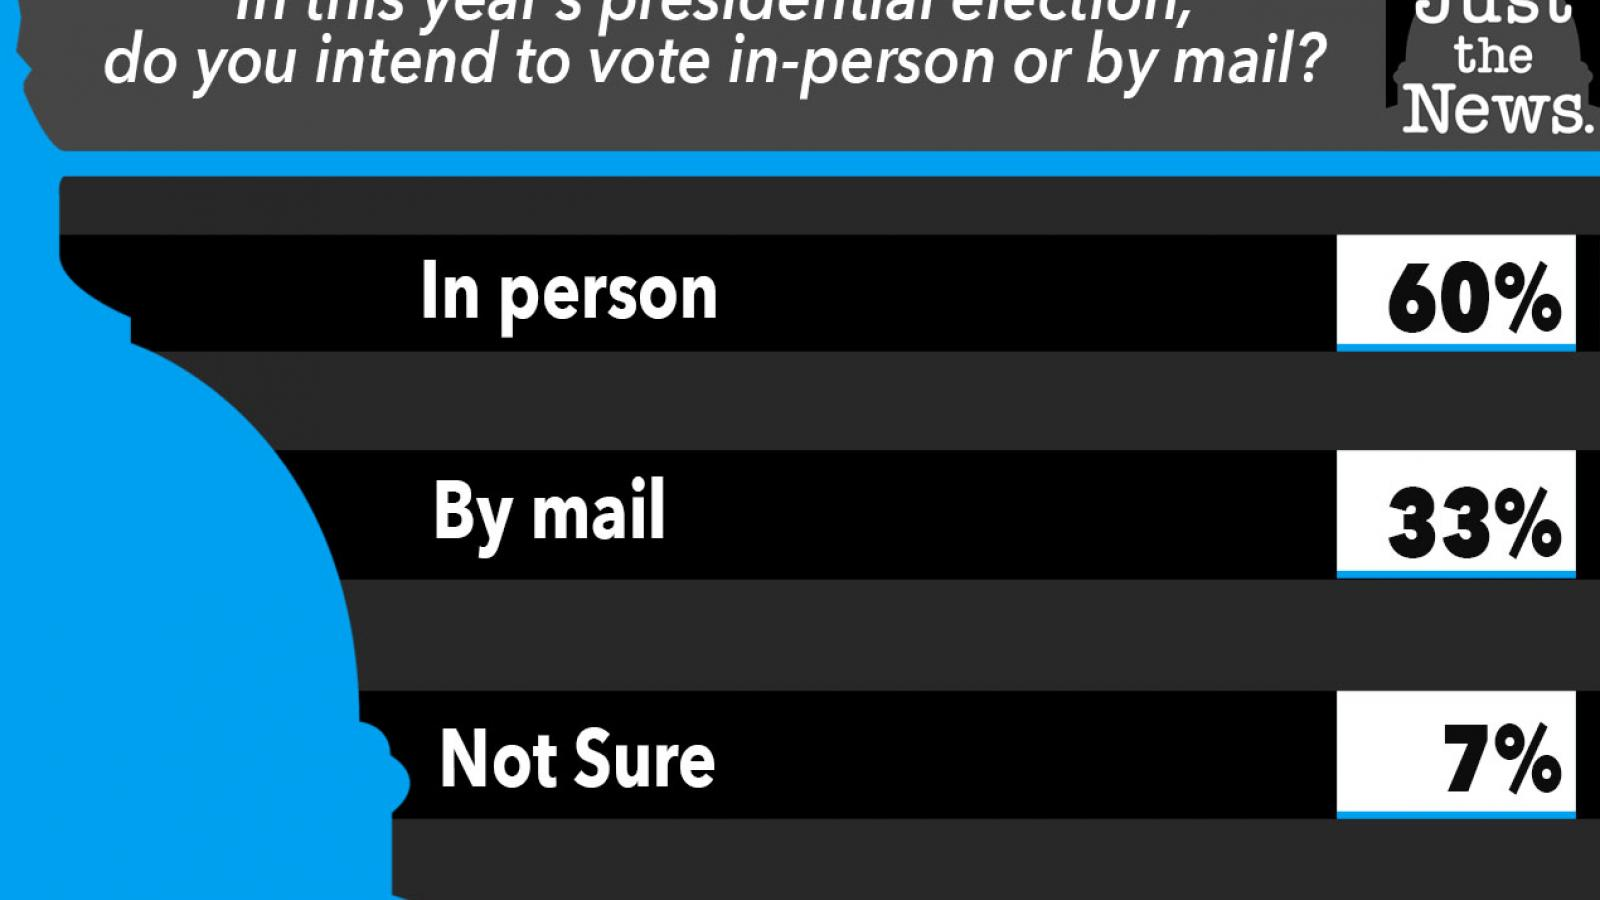 Just the News Poll, Do you intend to vote in-person or by mail?